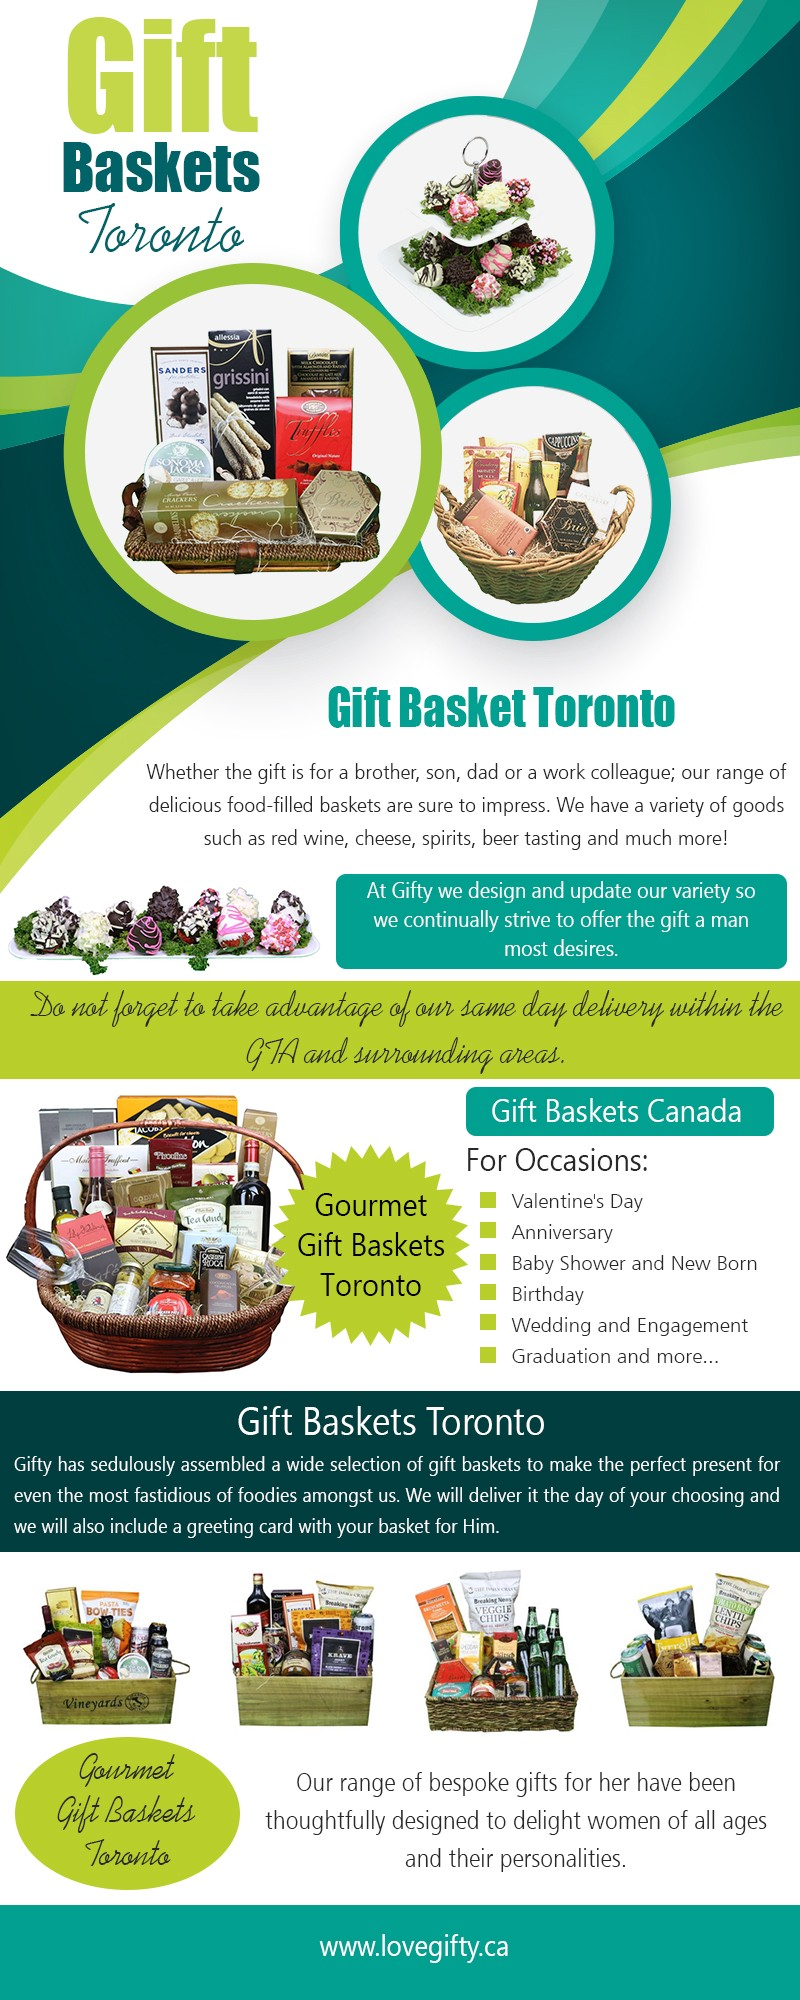 Gourmet gift basket best corporate gifts that are designed to impress at https://lovegifty.ca/